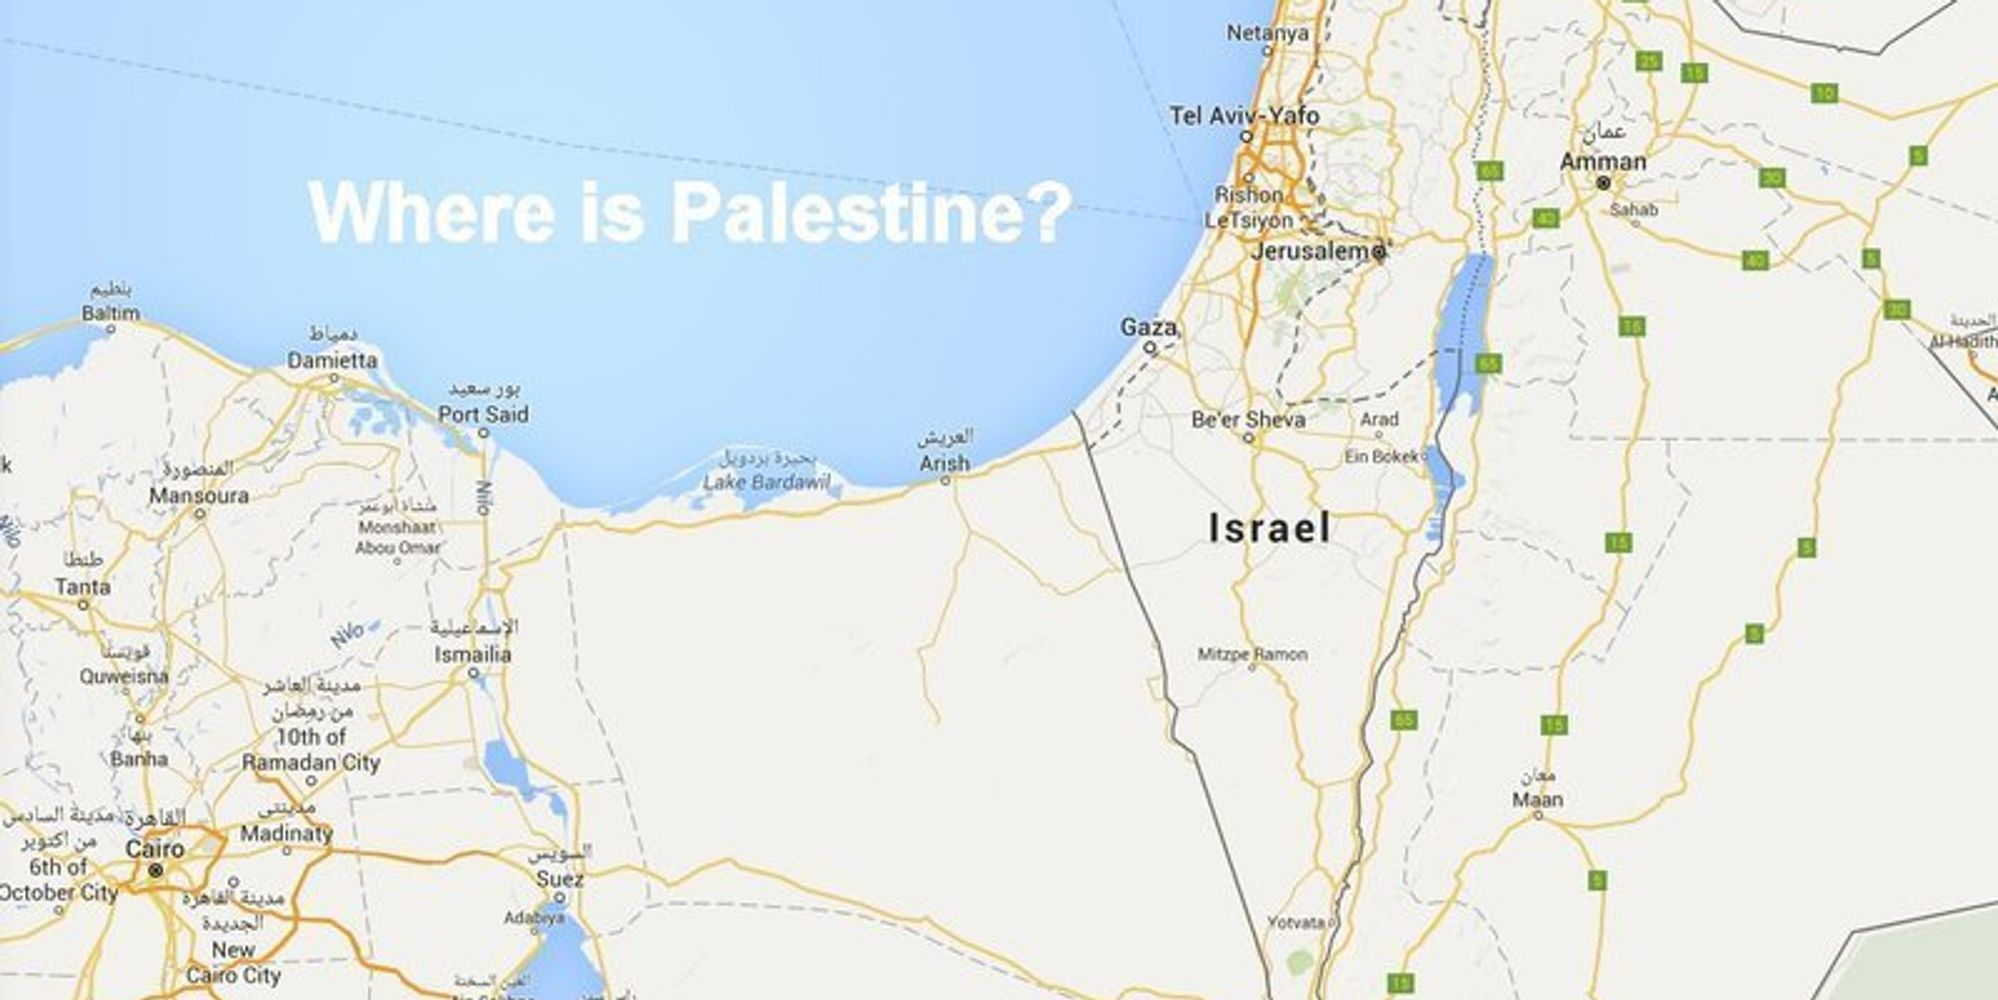 Palestine Removed From Google Maps Claim Journalists